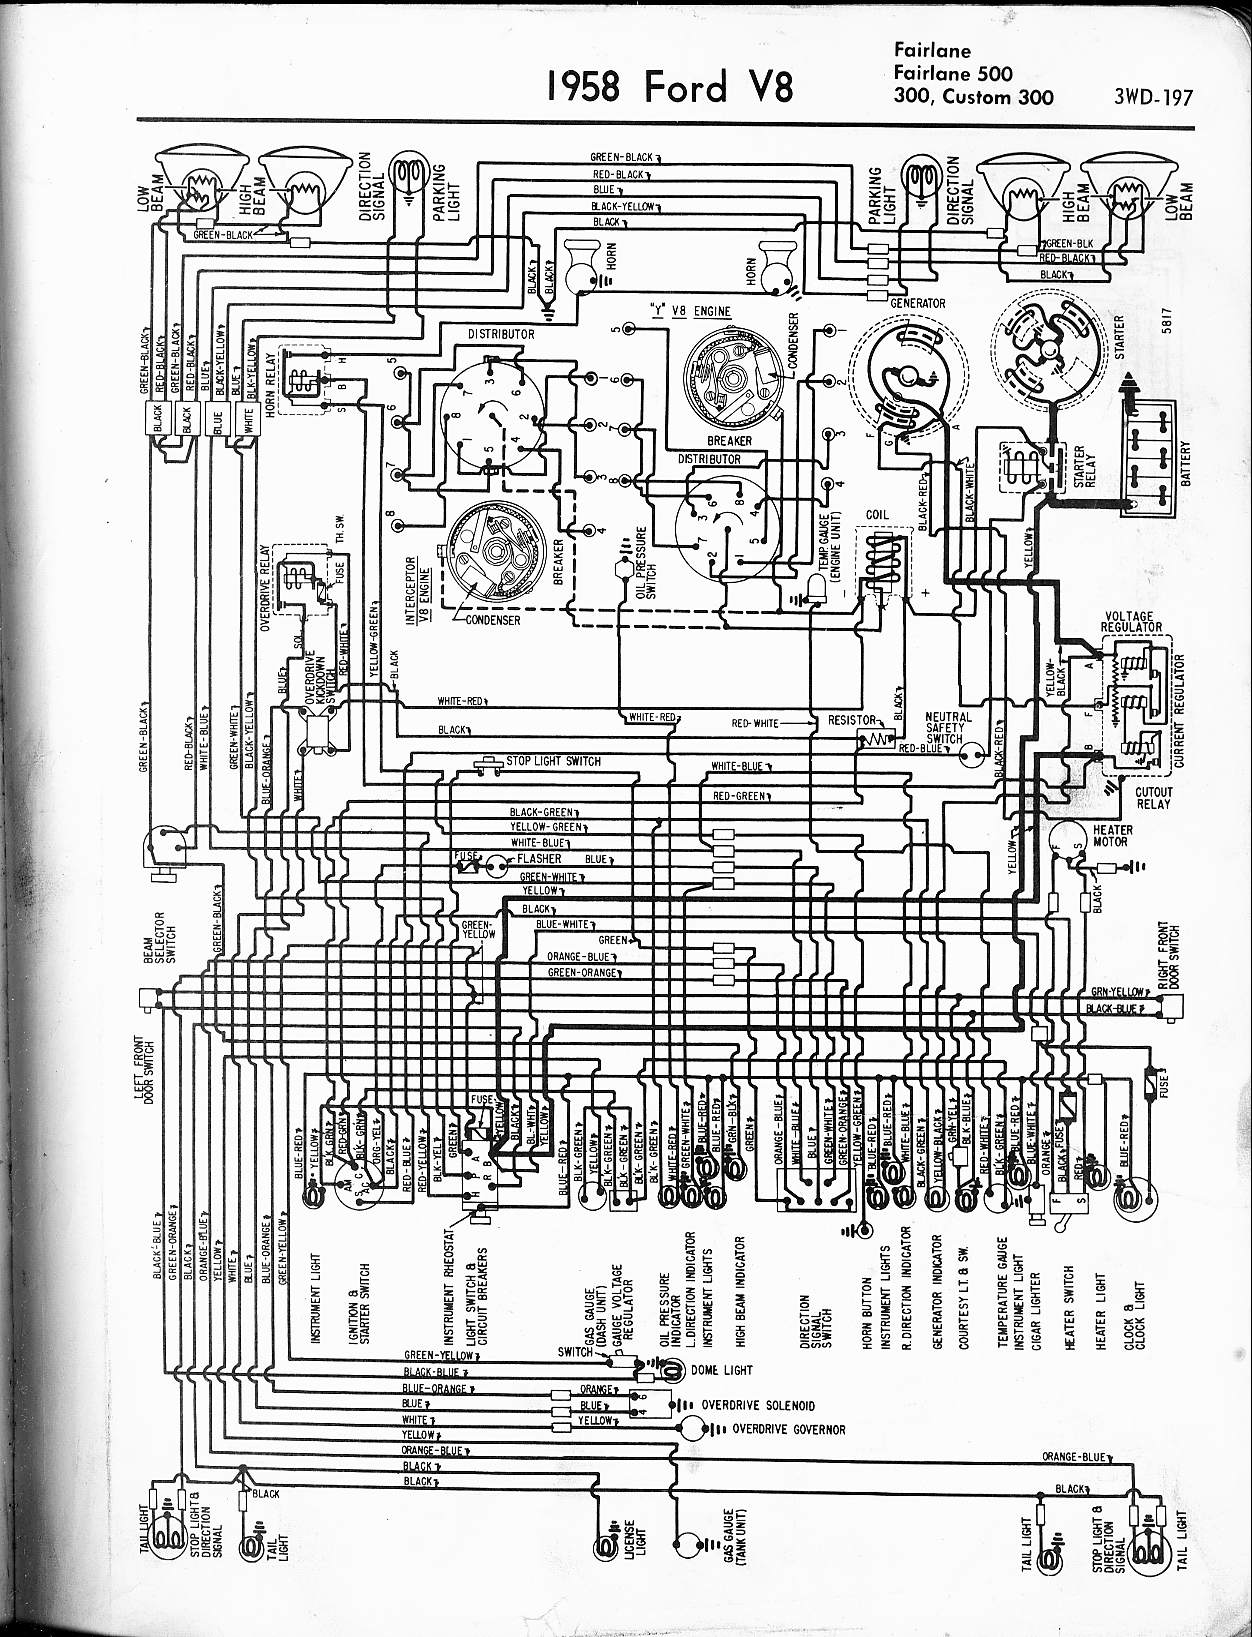 Marvelous 1966 Ford Thunderbird Wiring Diagram Wiring Diagram Database Wiring Cloud Nuvitbieswglorg